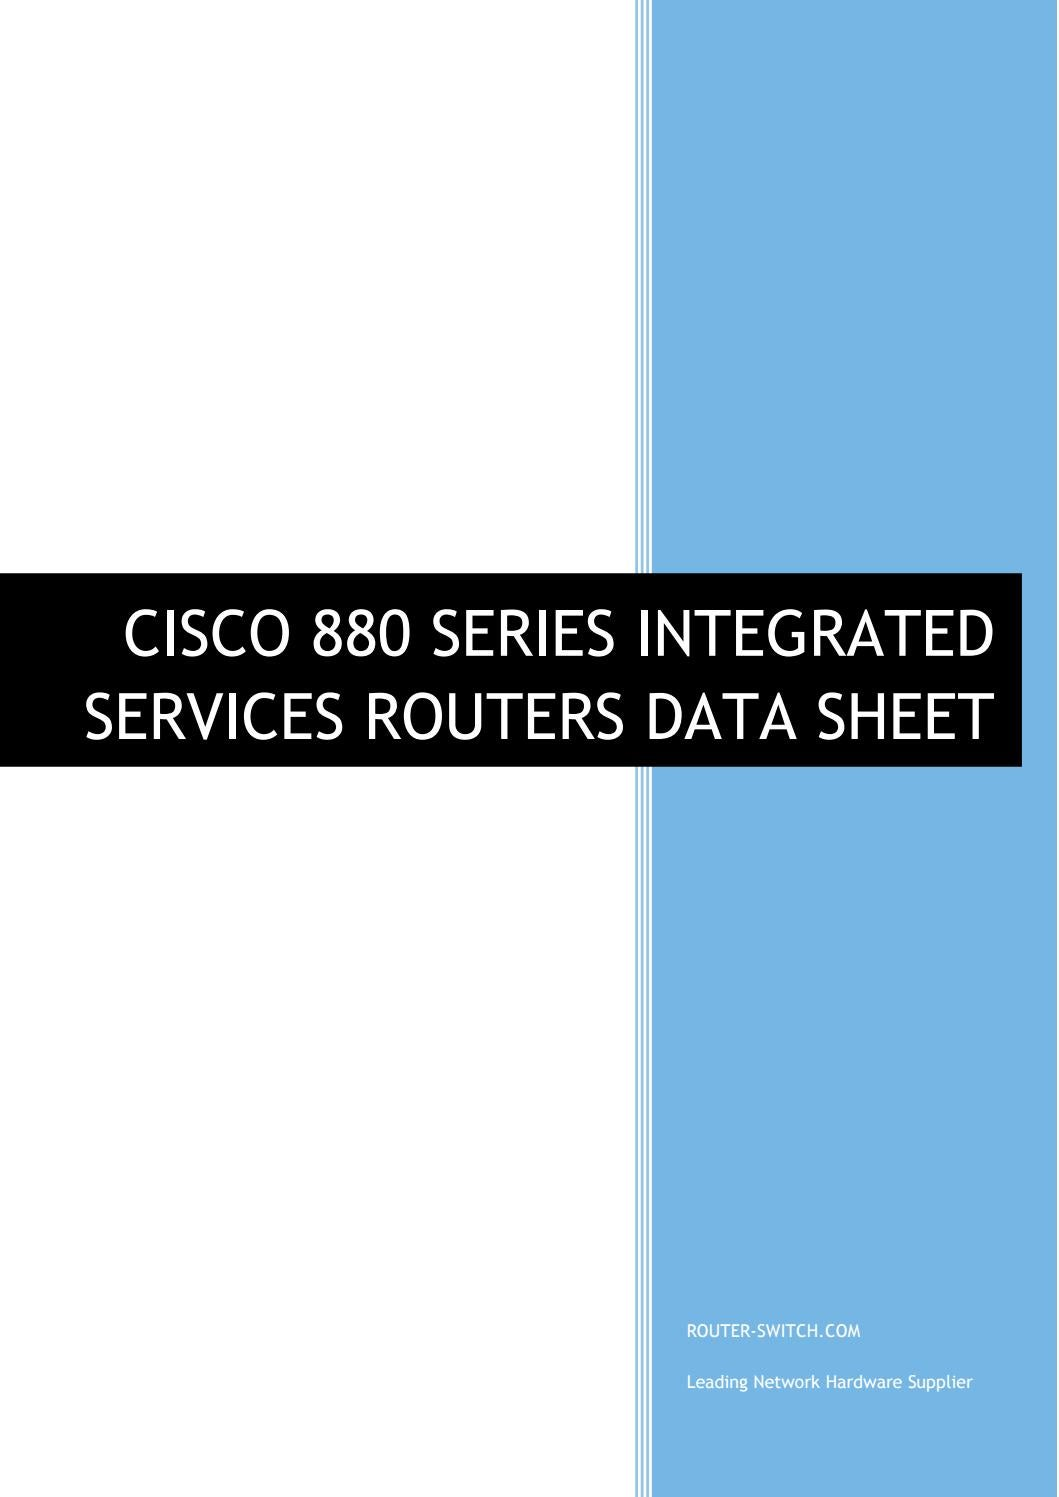 Cisco 880 series integrated services routers data sheet by